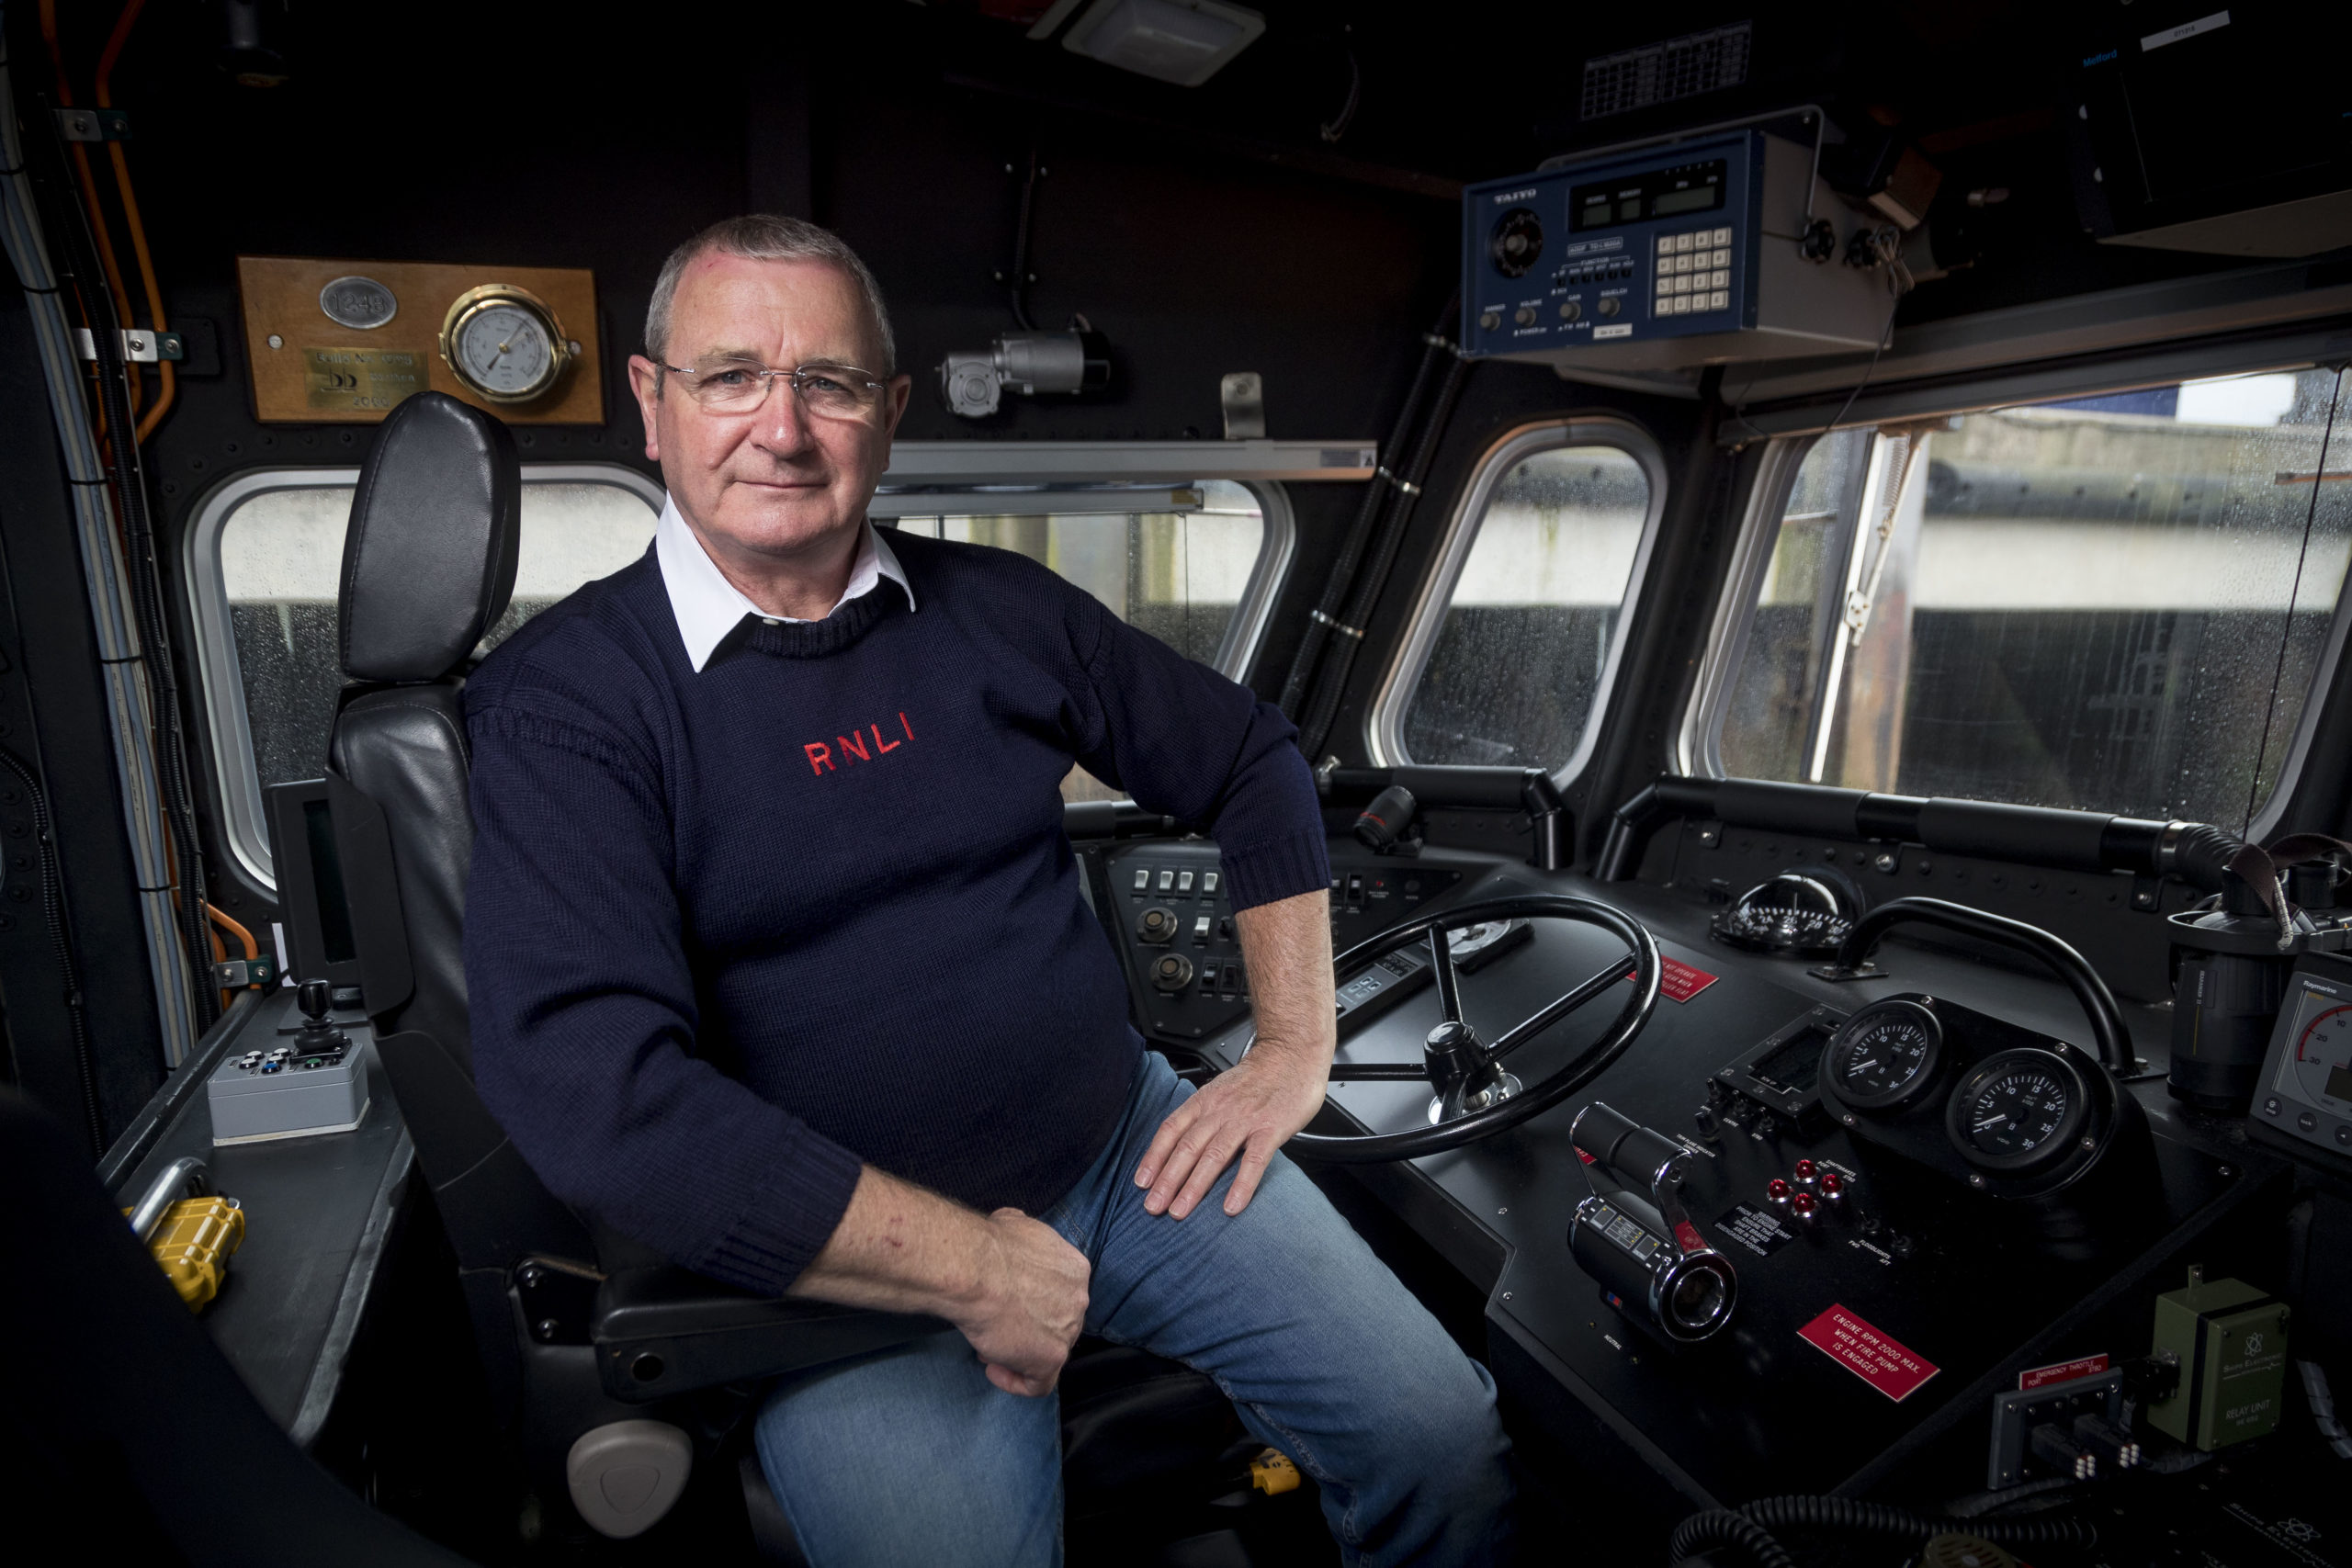 Aberdeen Lifeboat Station operations manager Bill Deans MBE